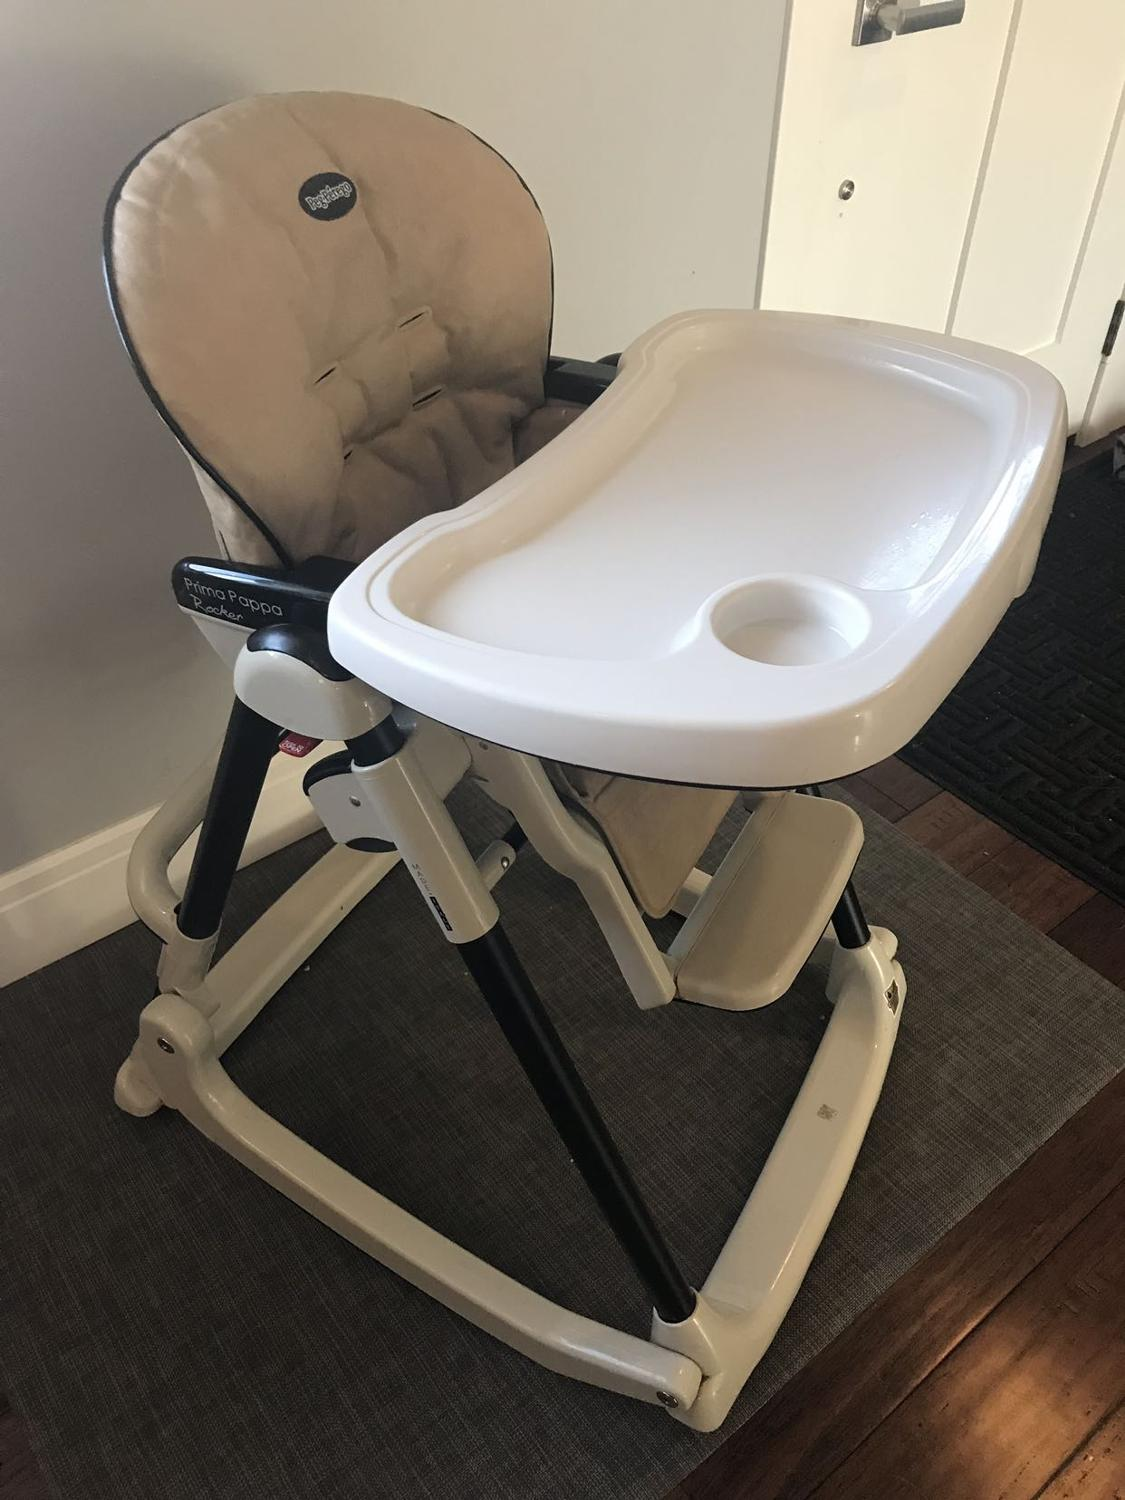 Find More Peg Perego Prima Pappa Rocker High Chair For